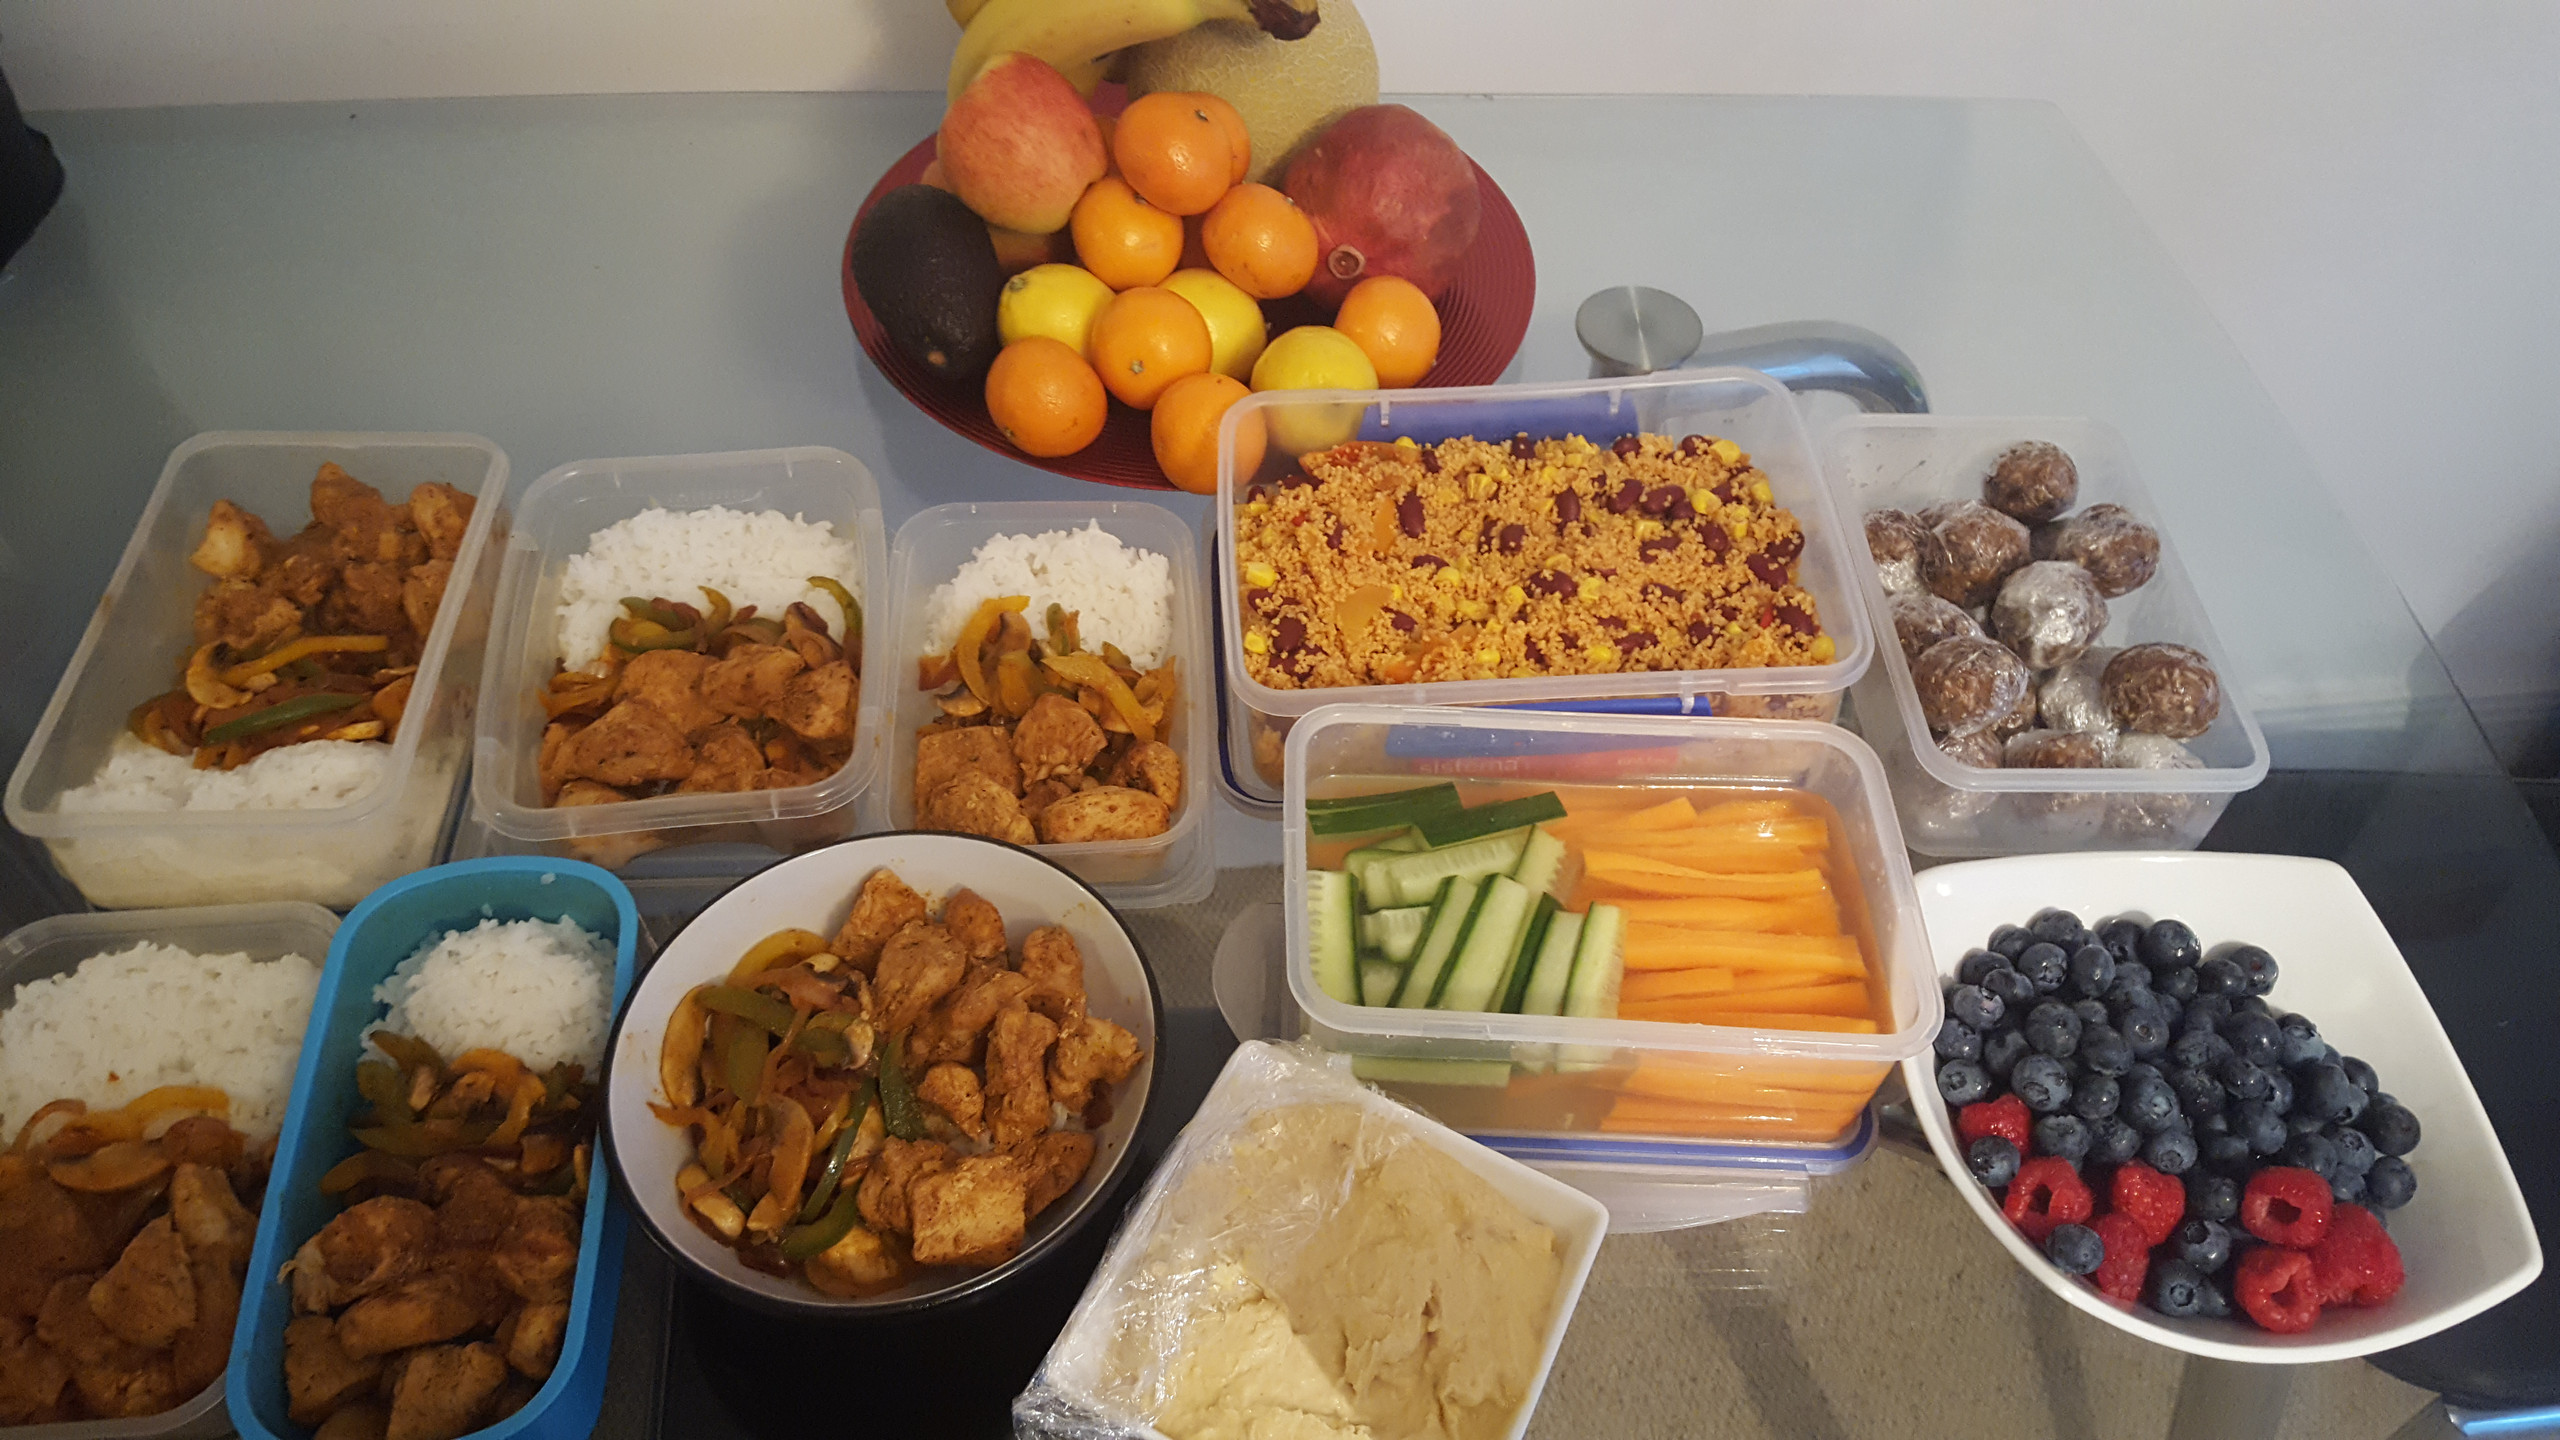 Examples of my meal planning and prepping!